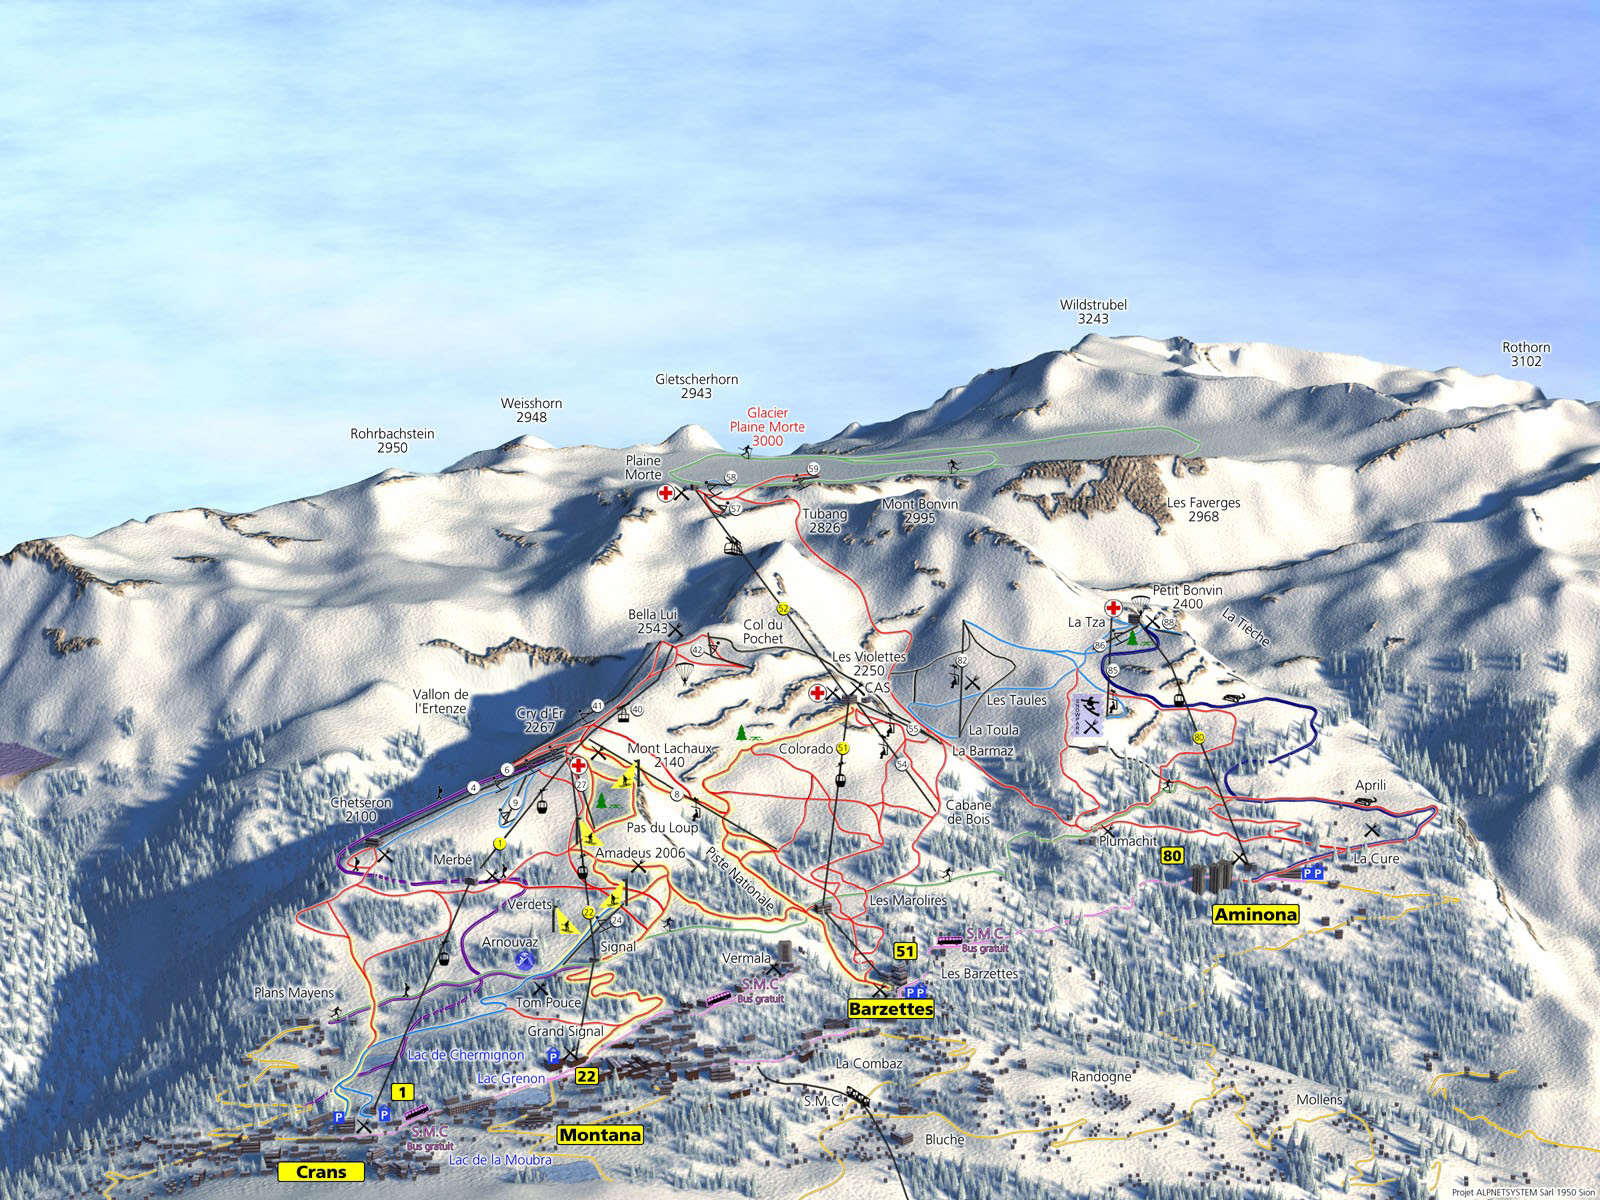 Crans Montana Piste / Trail Map